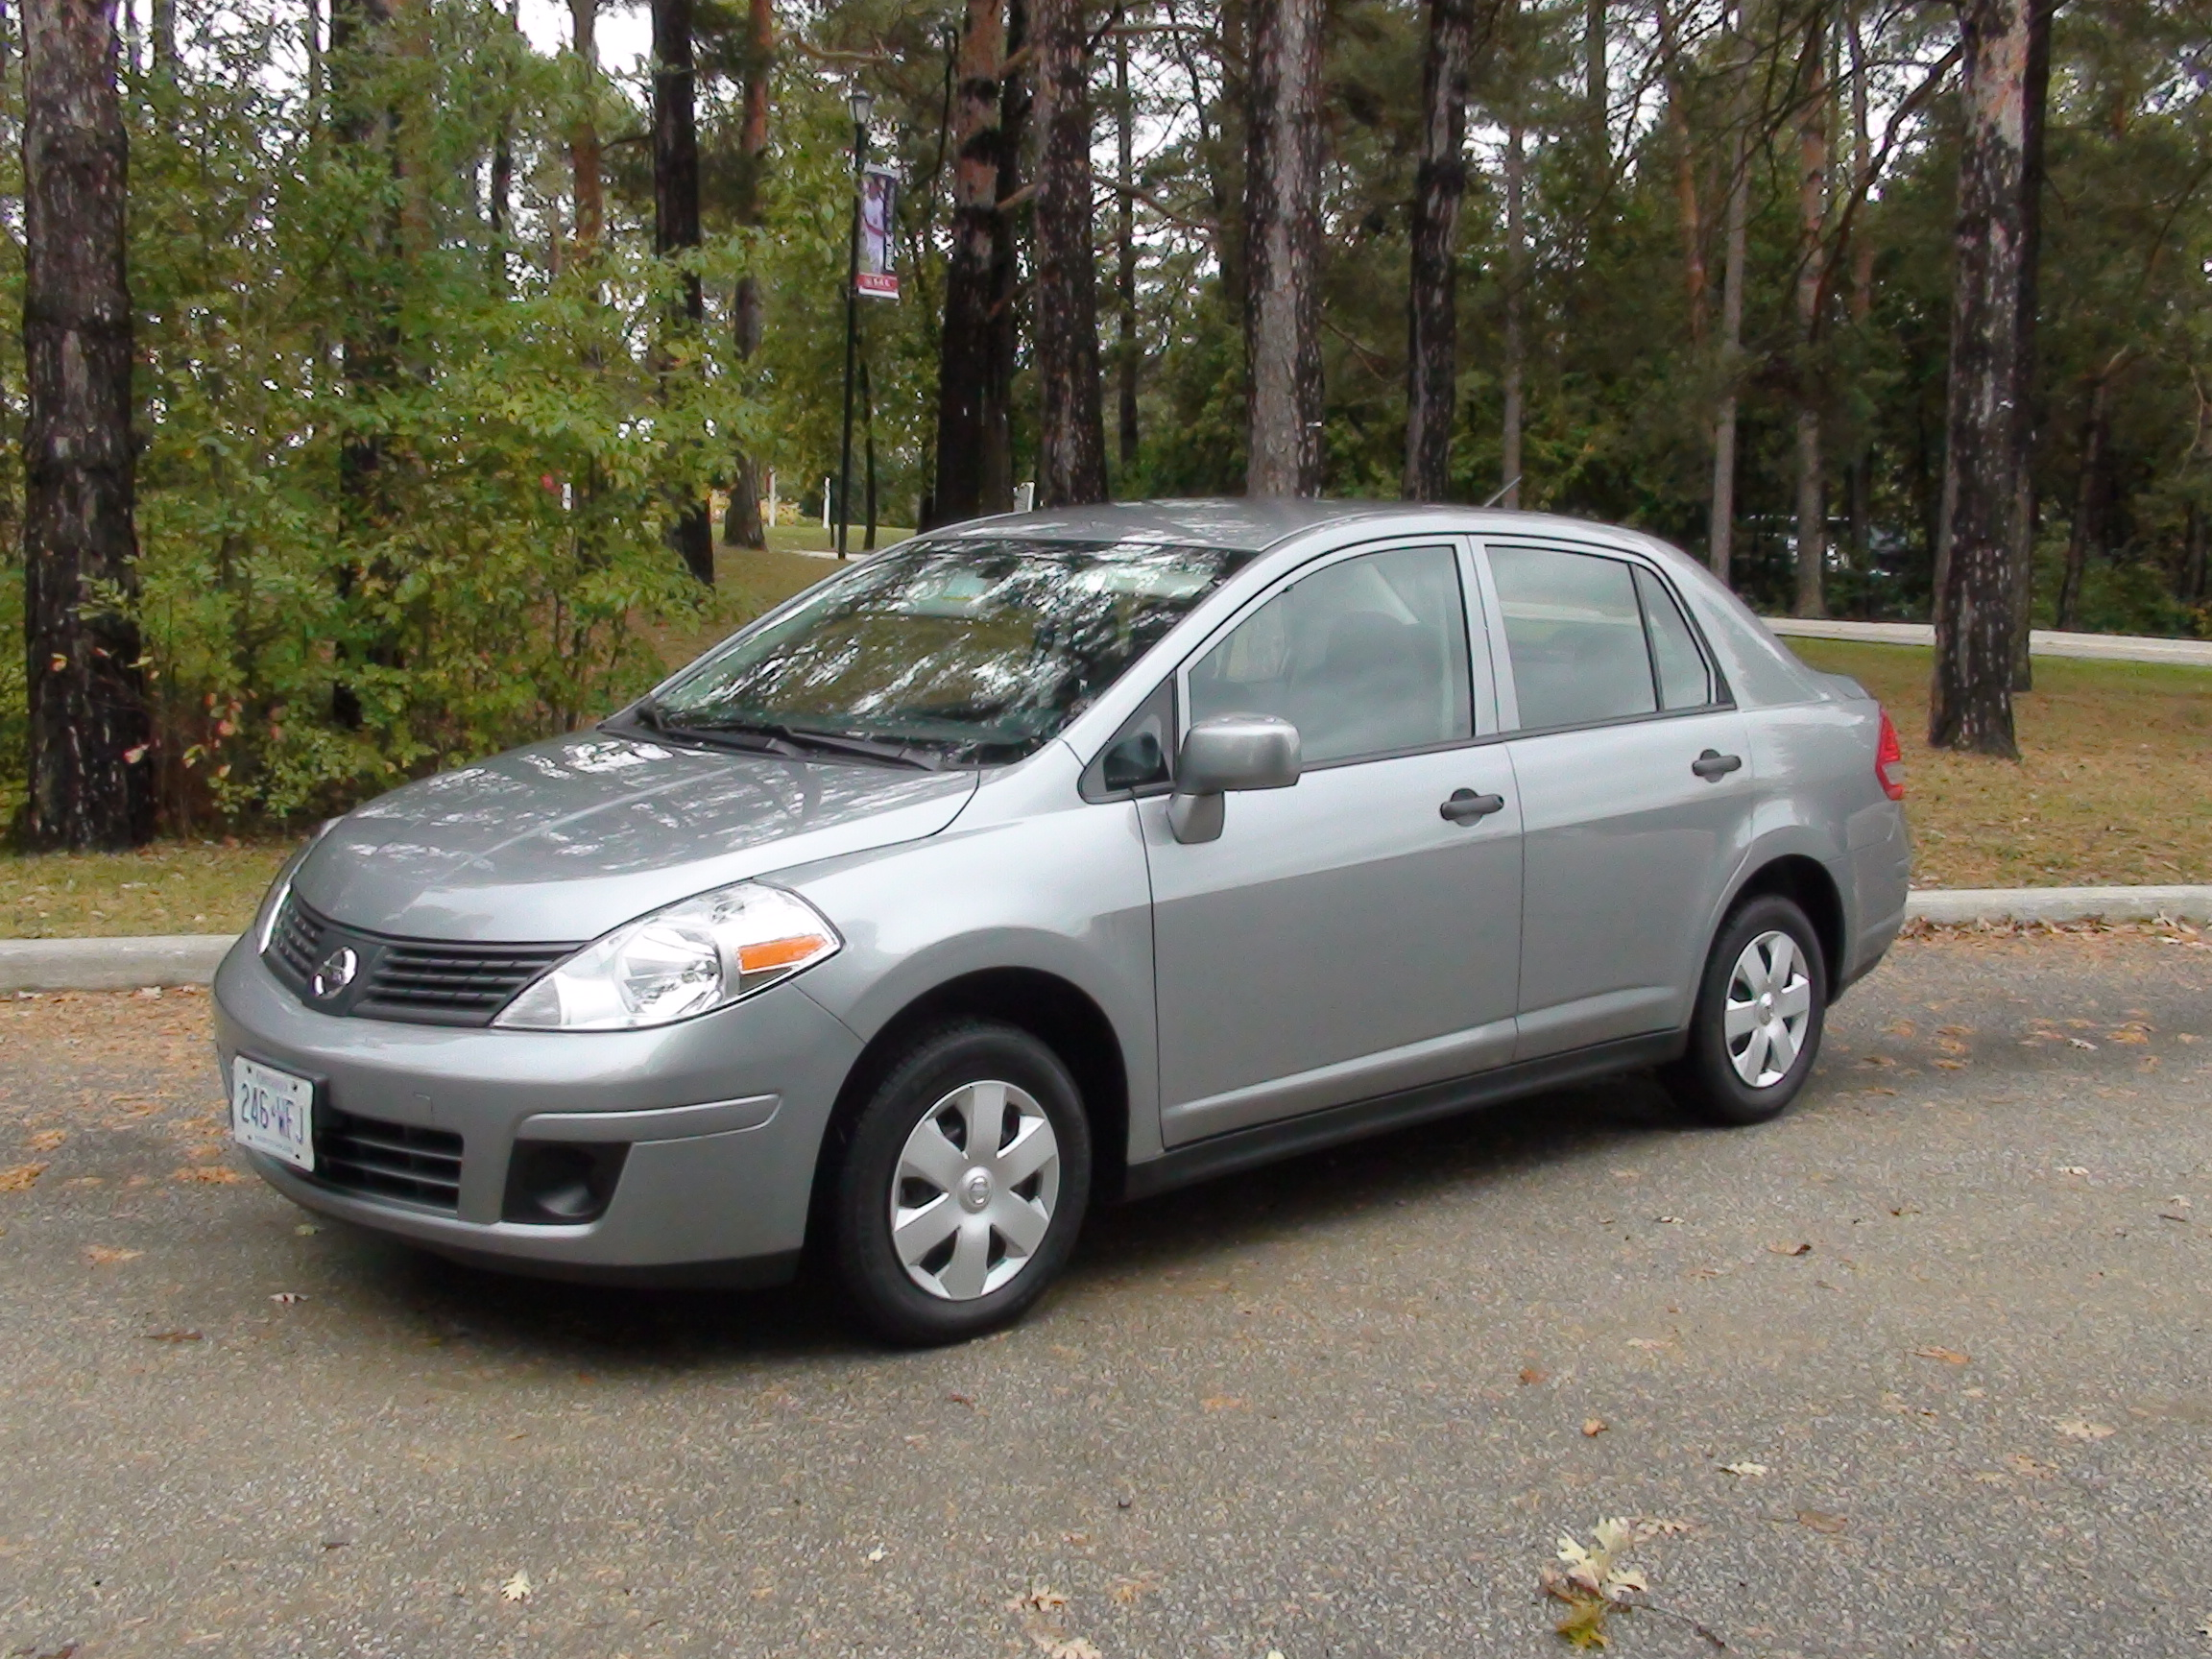 File:Tino Rossiniu0027s Reviews   012   2009 Nissan Versa 1.6 Sedan